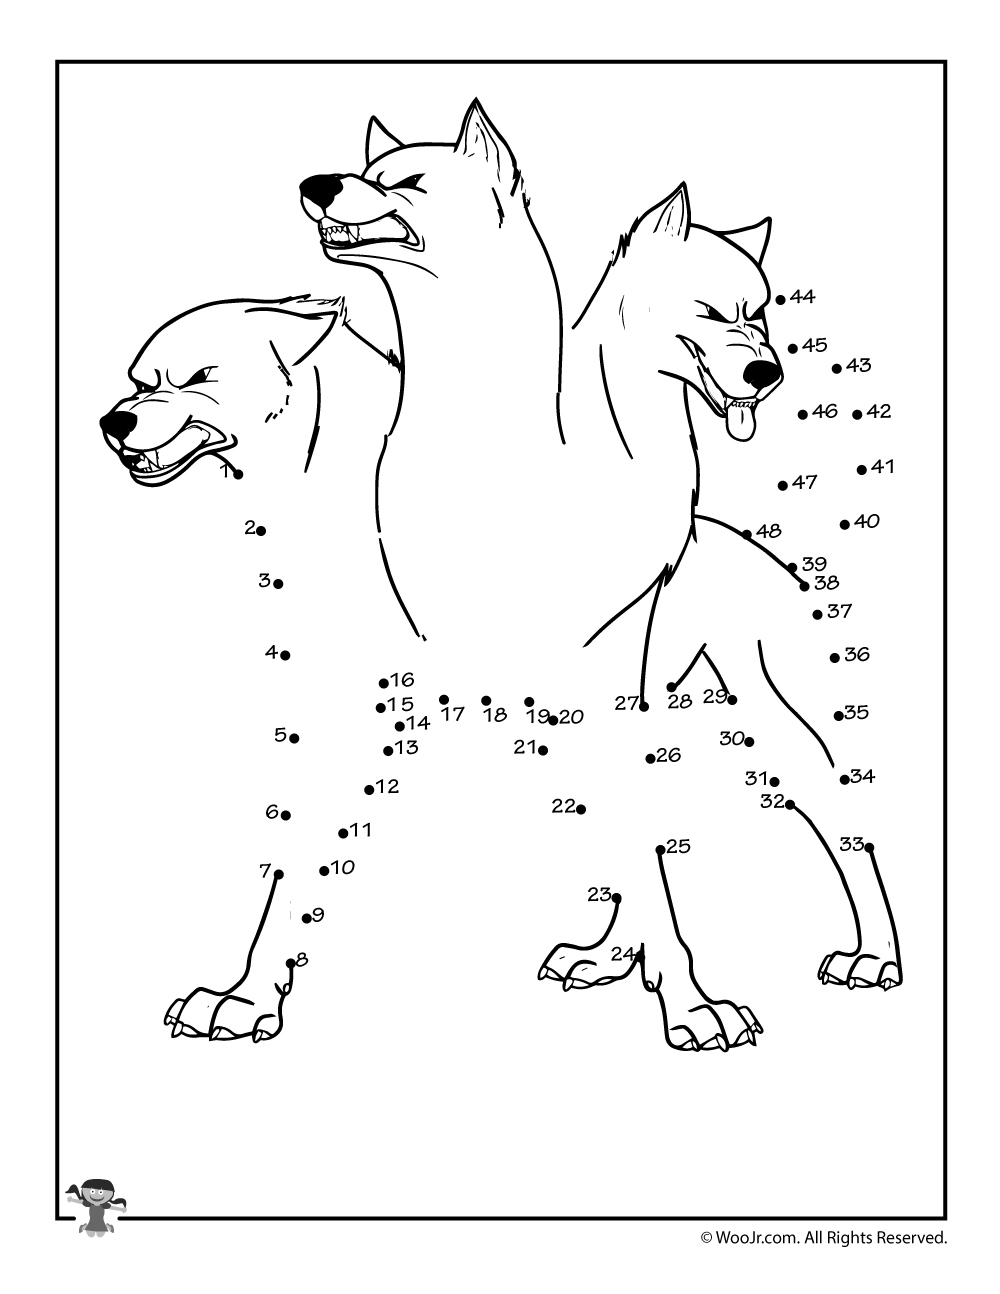 Cerberus 3 headed dog greek mythology connect the dots worksheet woo jr kids activities